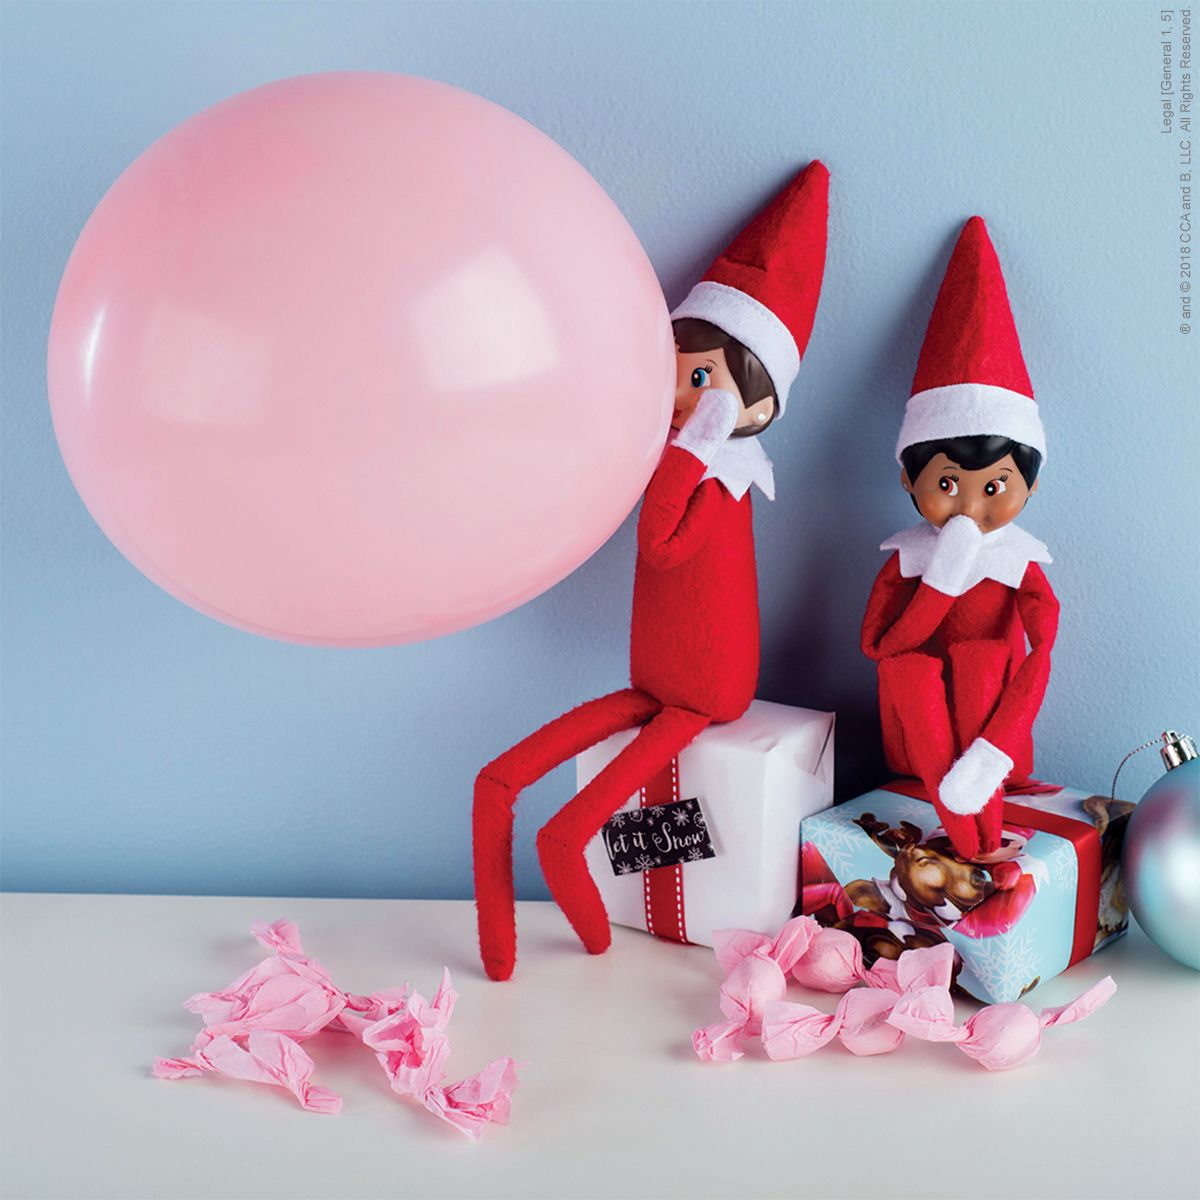 Never-Before-Seen Elf on the Shelf Ideas